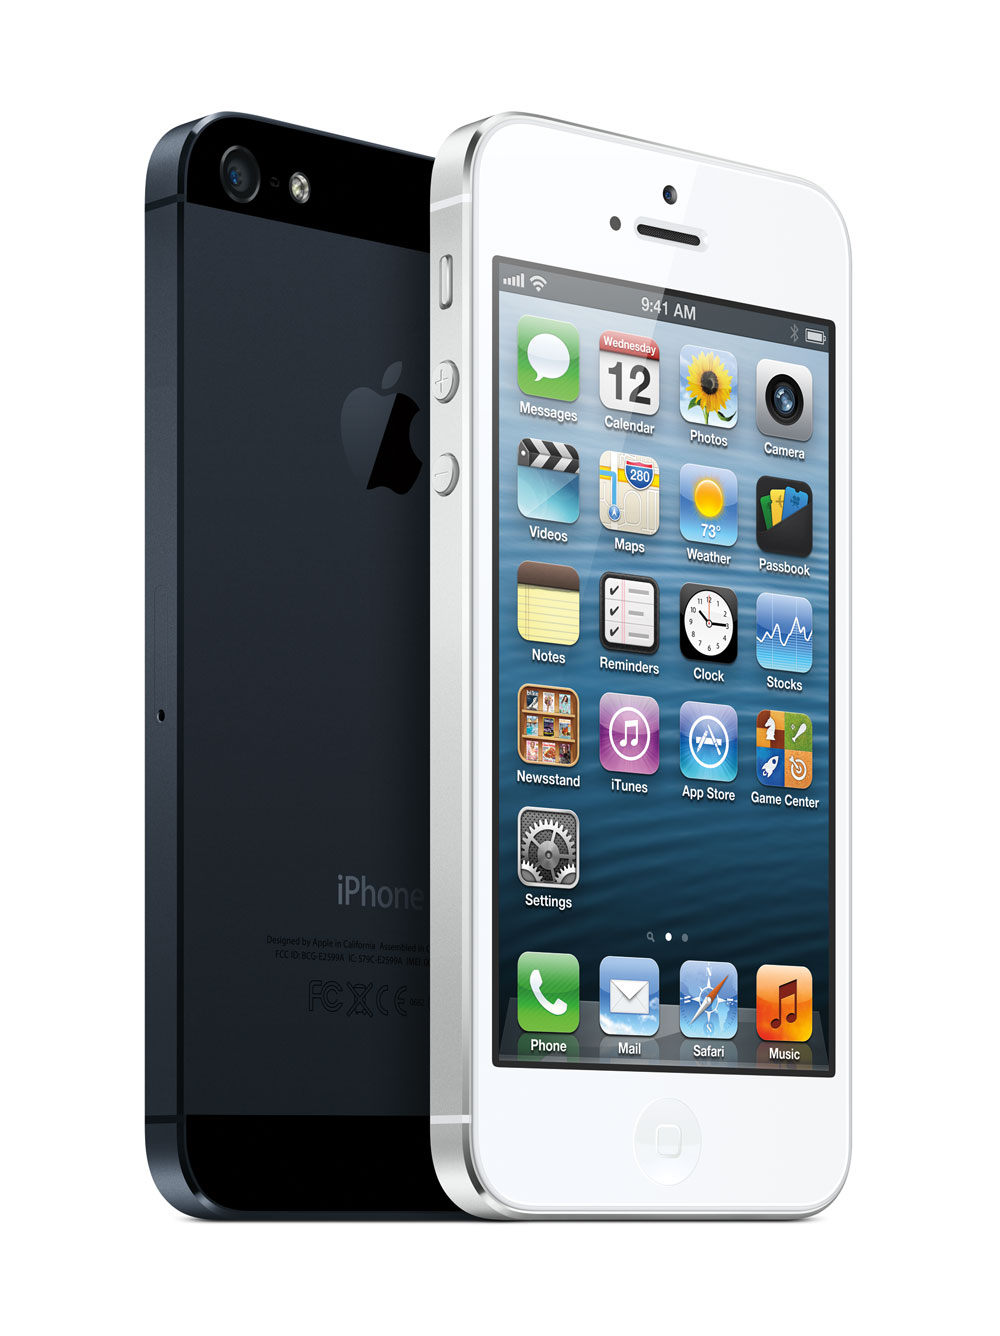 iphone5_34br-black-34fl-white_homescreen_pr-print